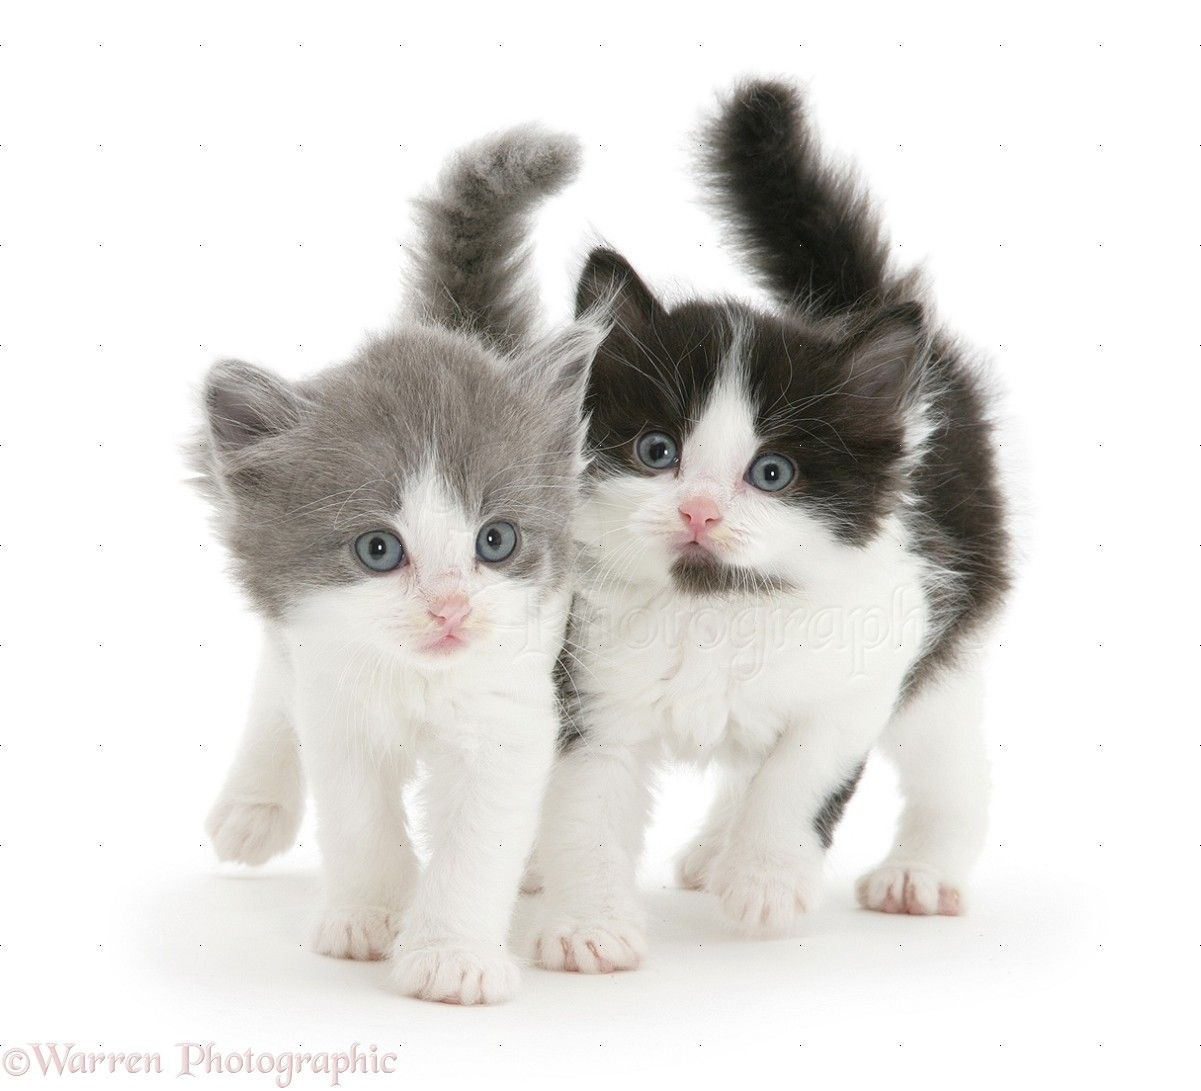 Two Fluffy Kittens A Grey And White Kitten And A Black And White Kitten Both Medium To Long Hair Kittens Cutest Cute Cats And Kittens Black And White Kittens